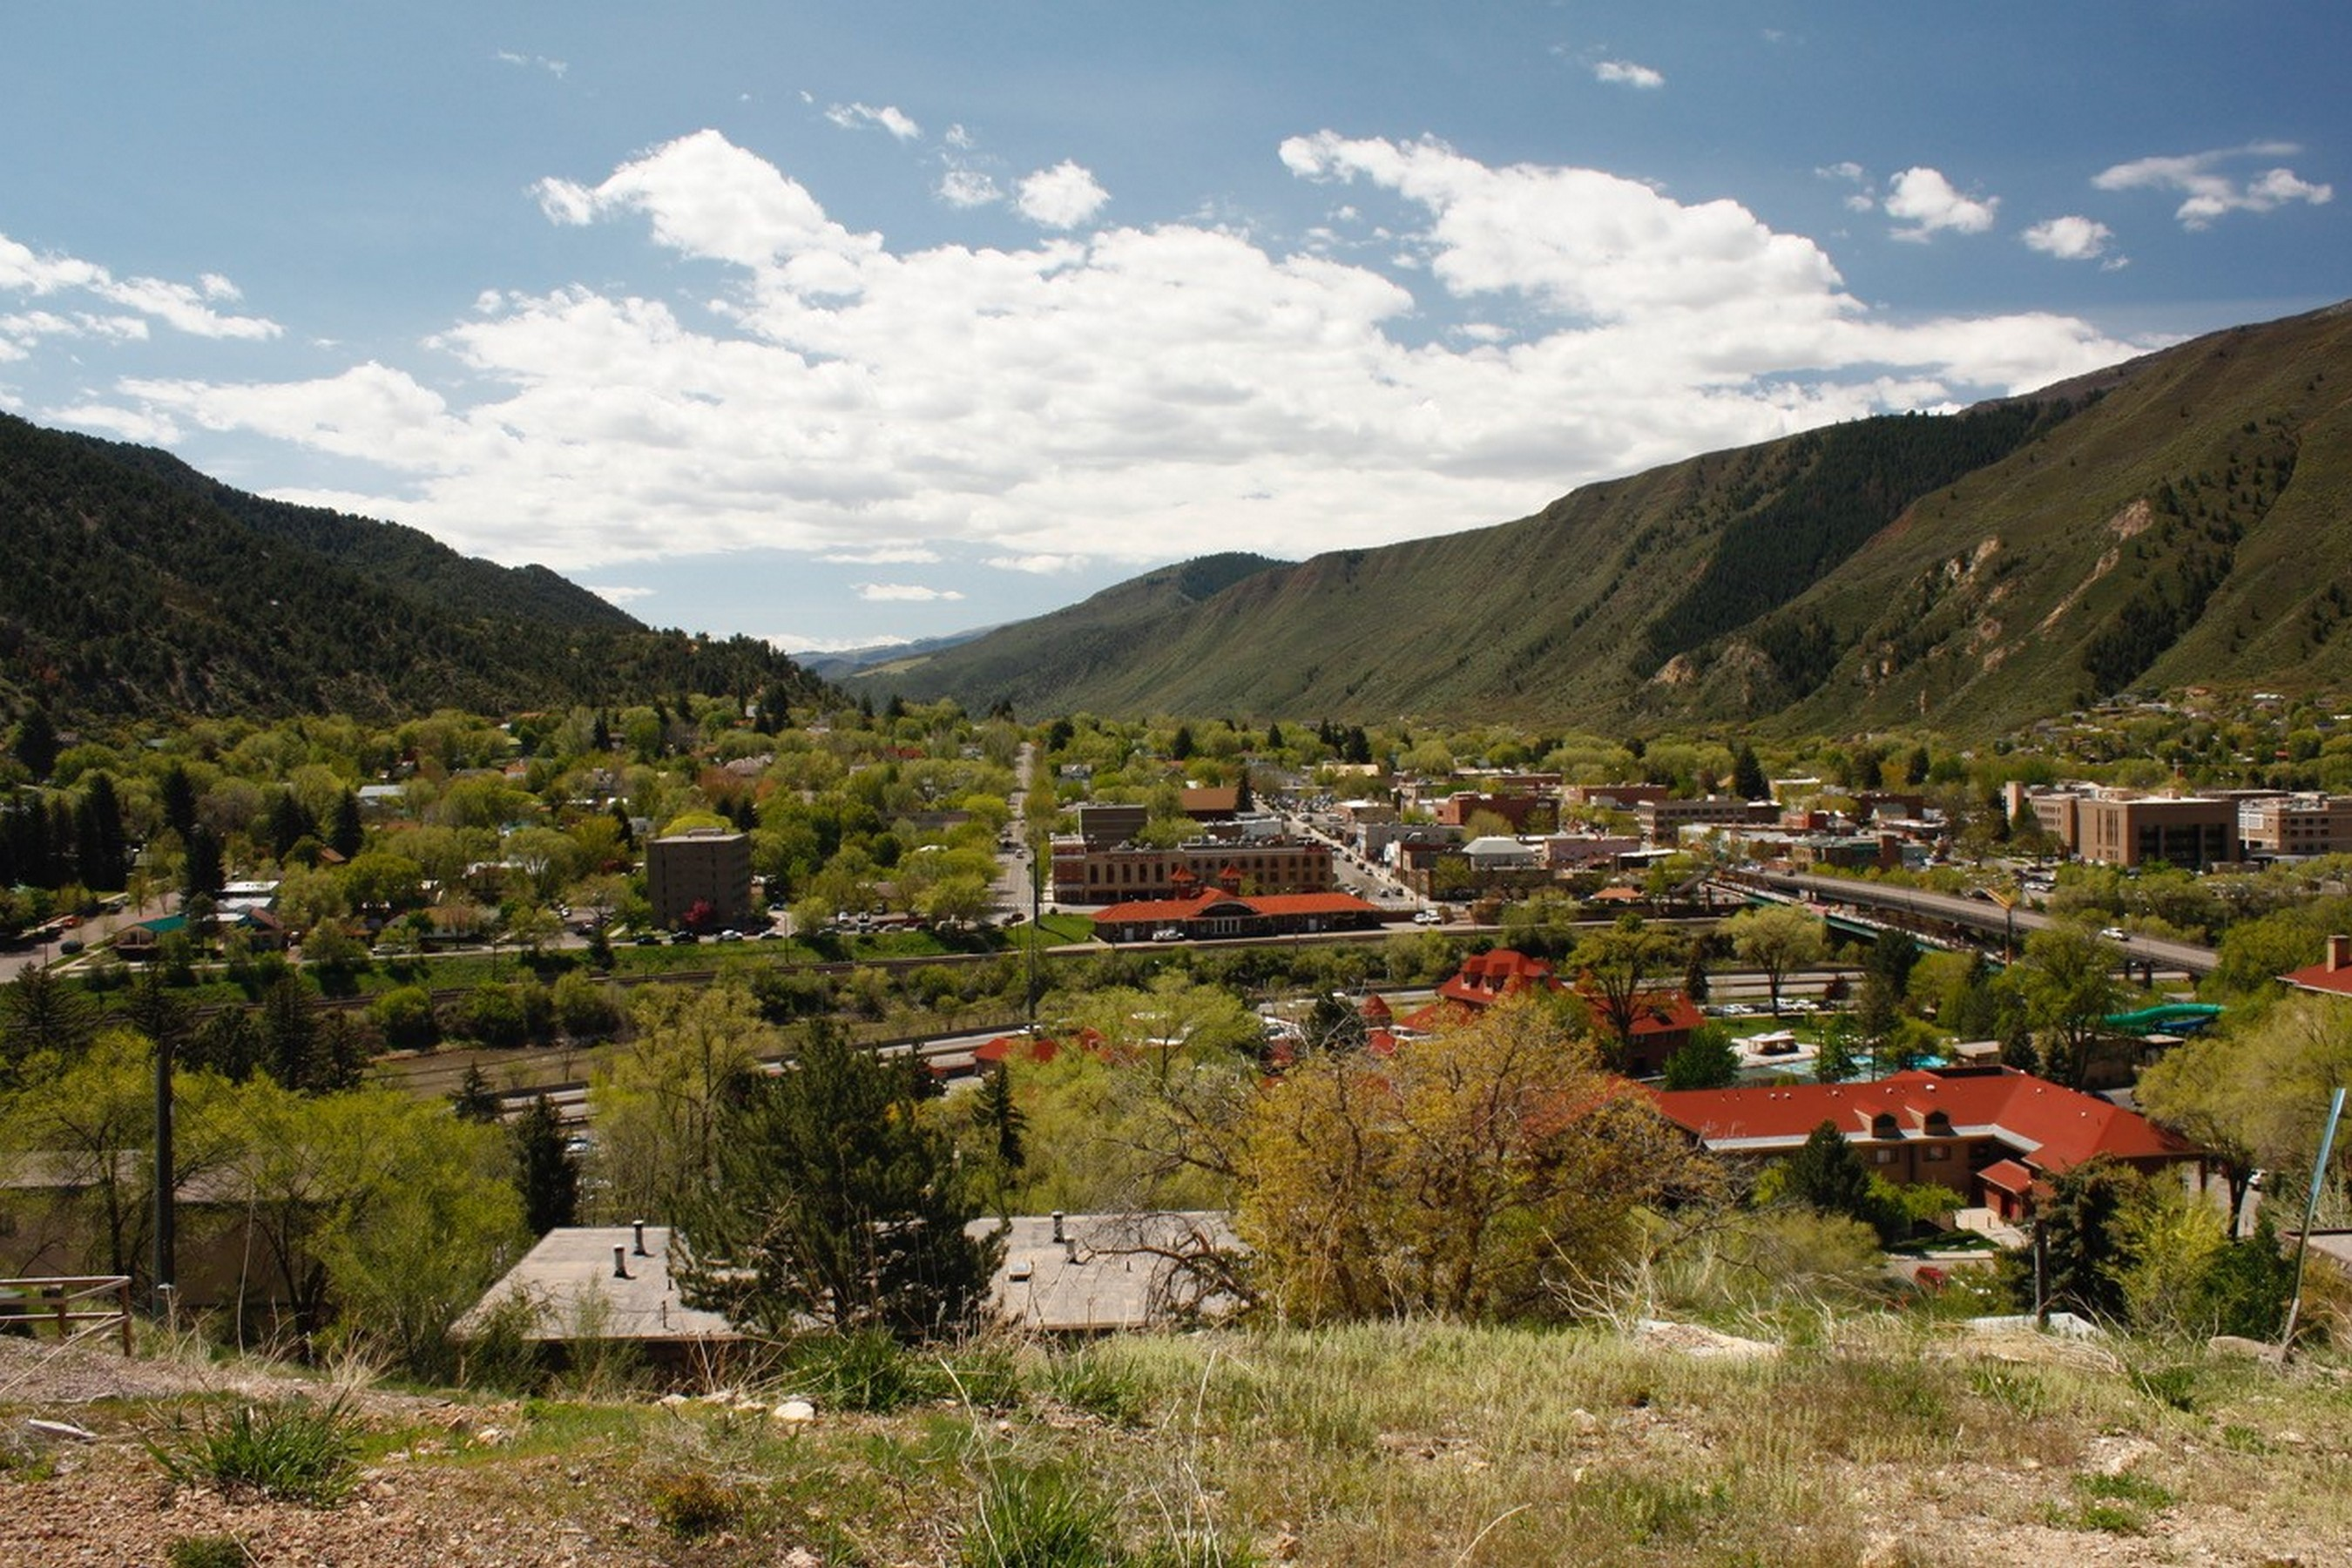 TBD Echo Street Glenwood Springs Photo